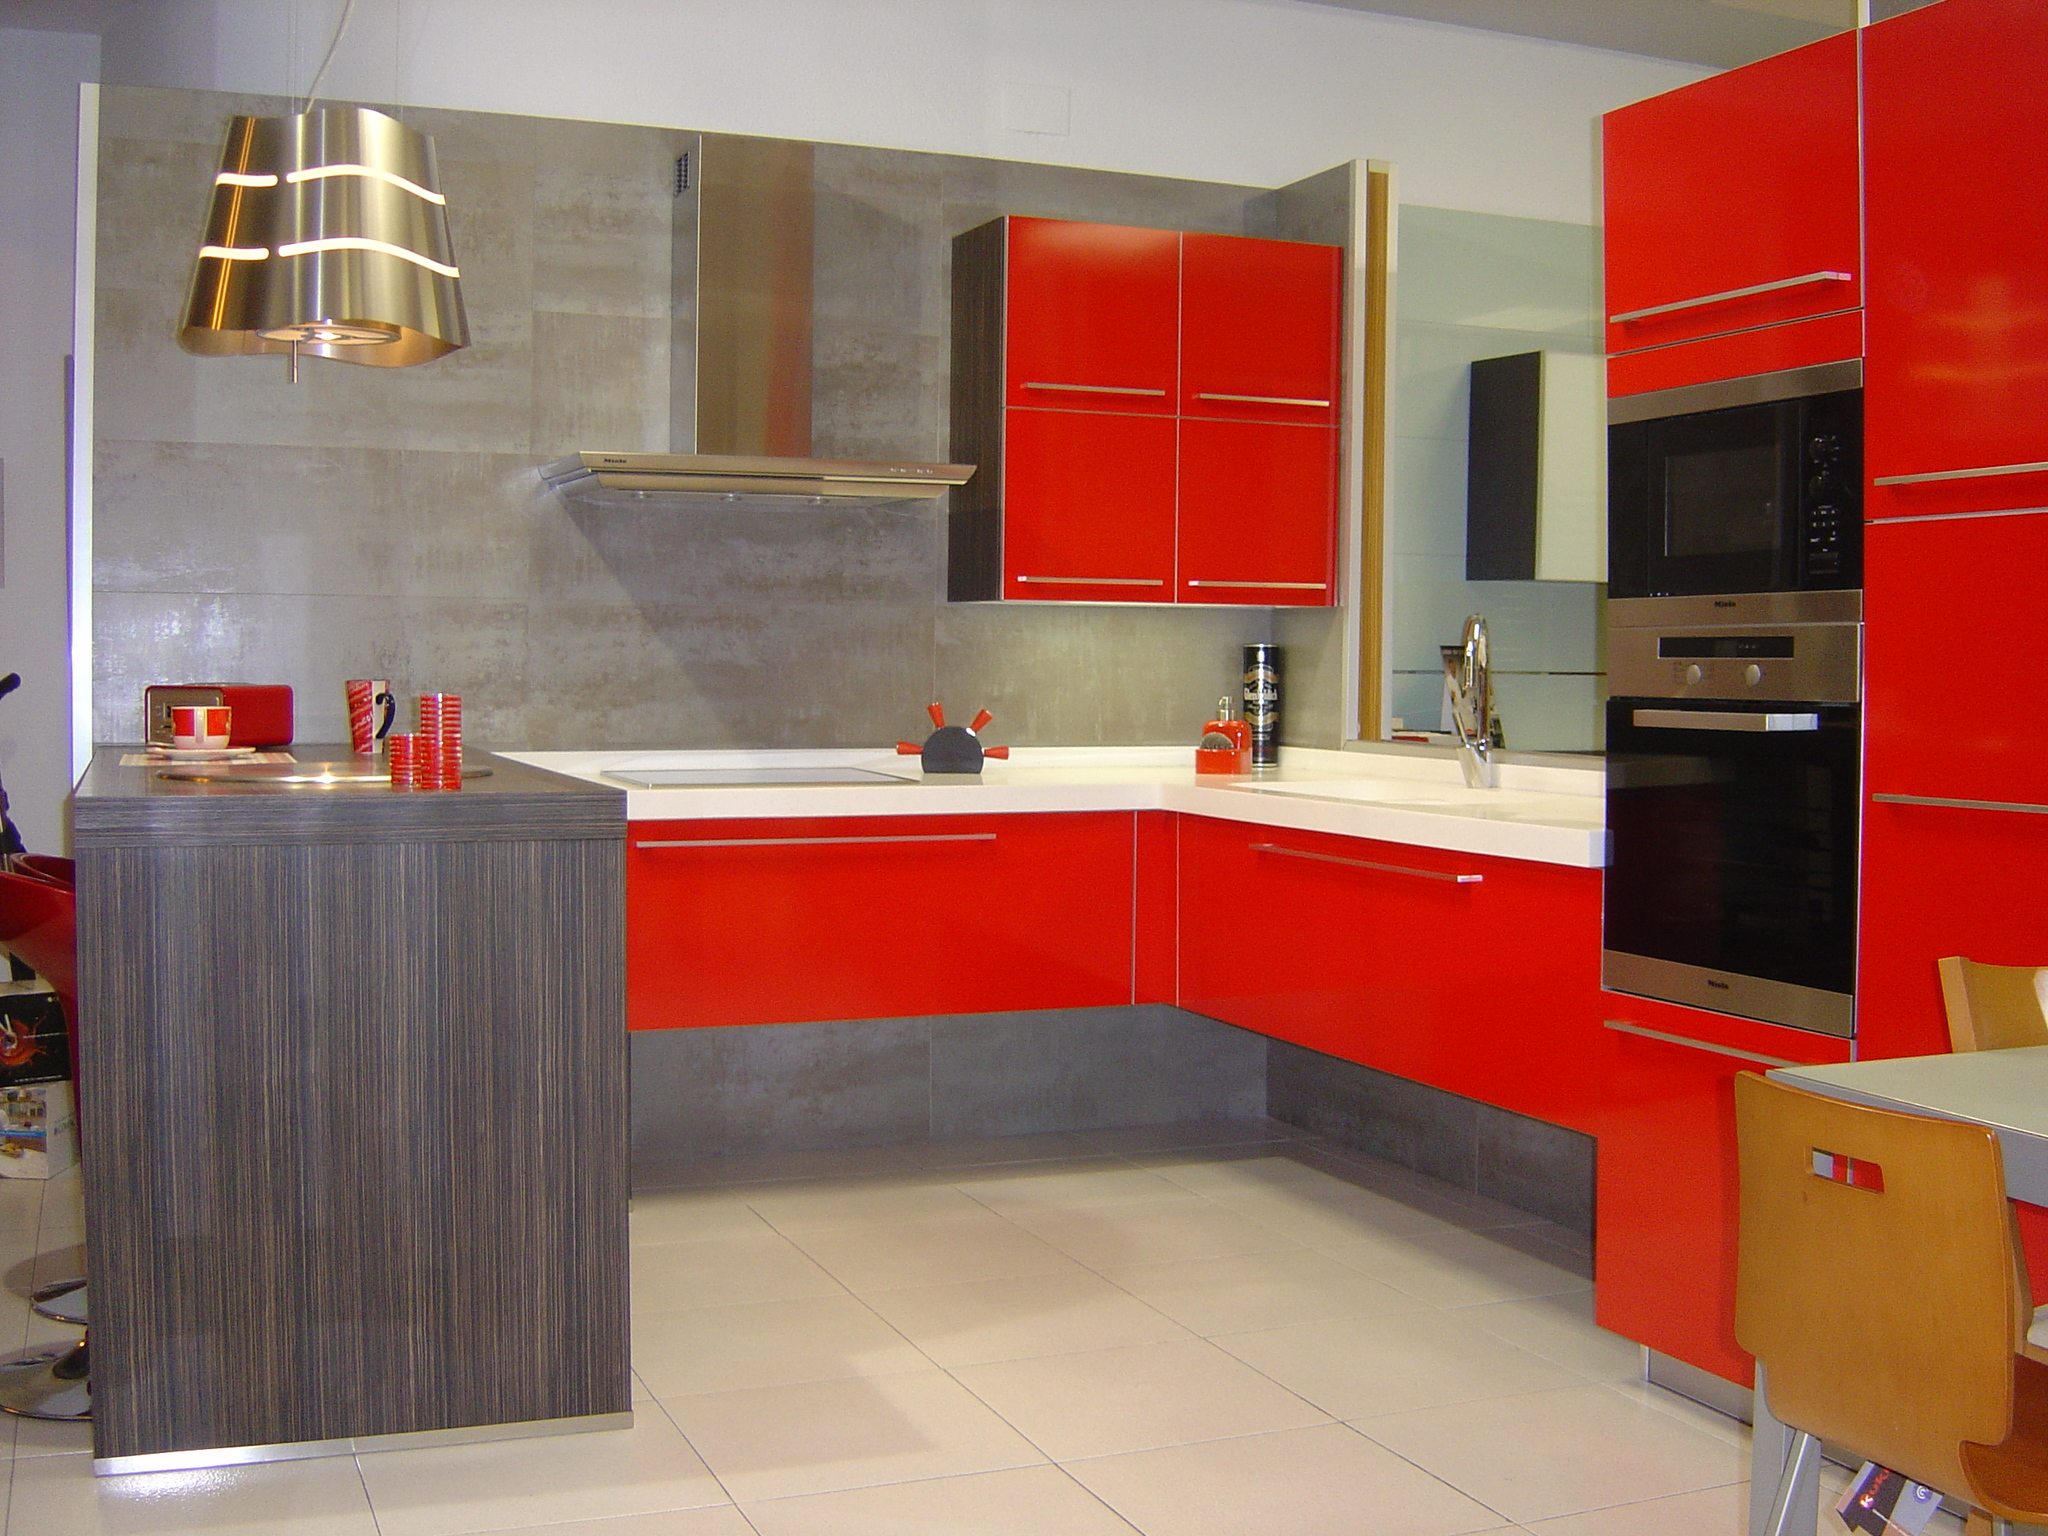 decoracion de cocinas en rojo pin decoracion de cocinas color rojo pelautscom on pinterest - Cocinas Rojas Y Blancas